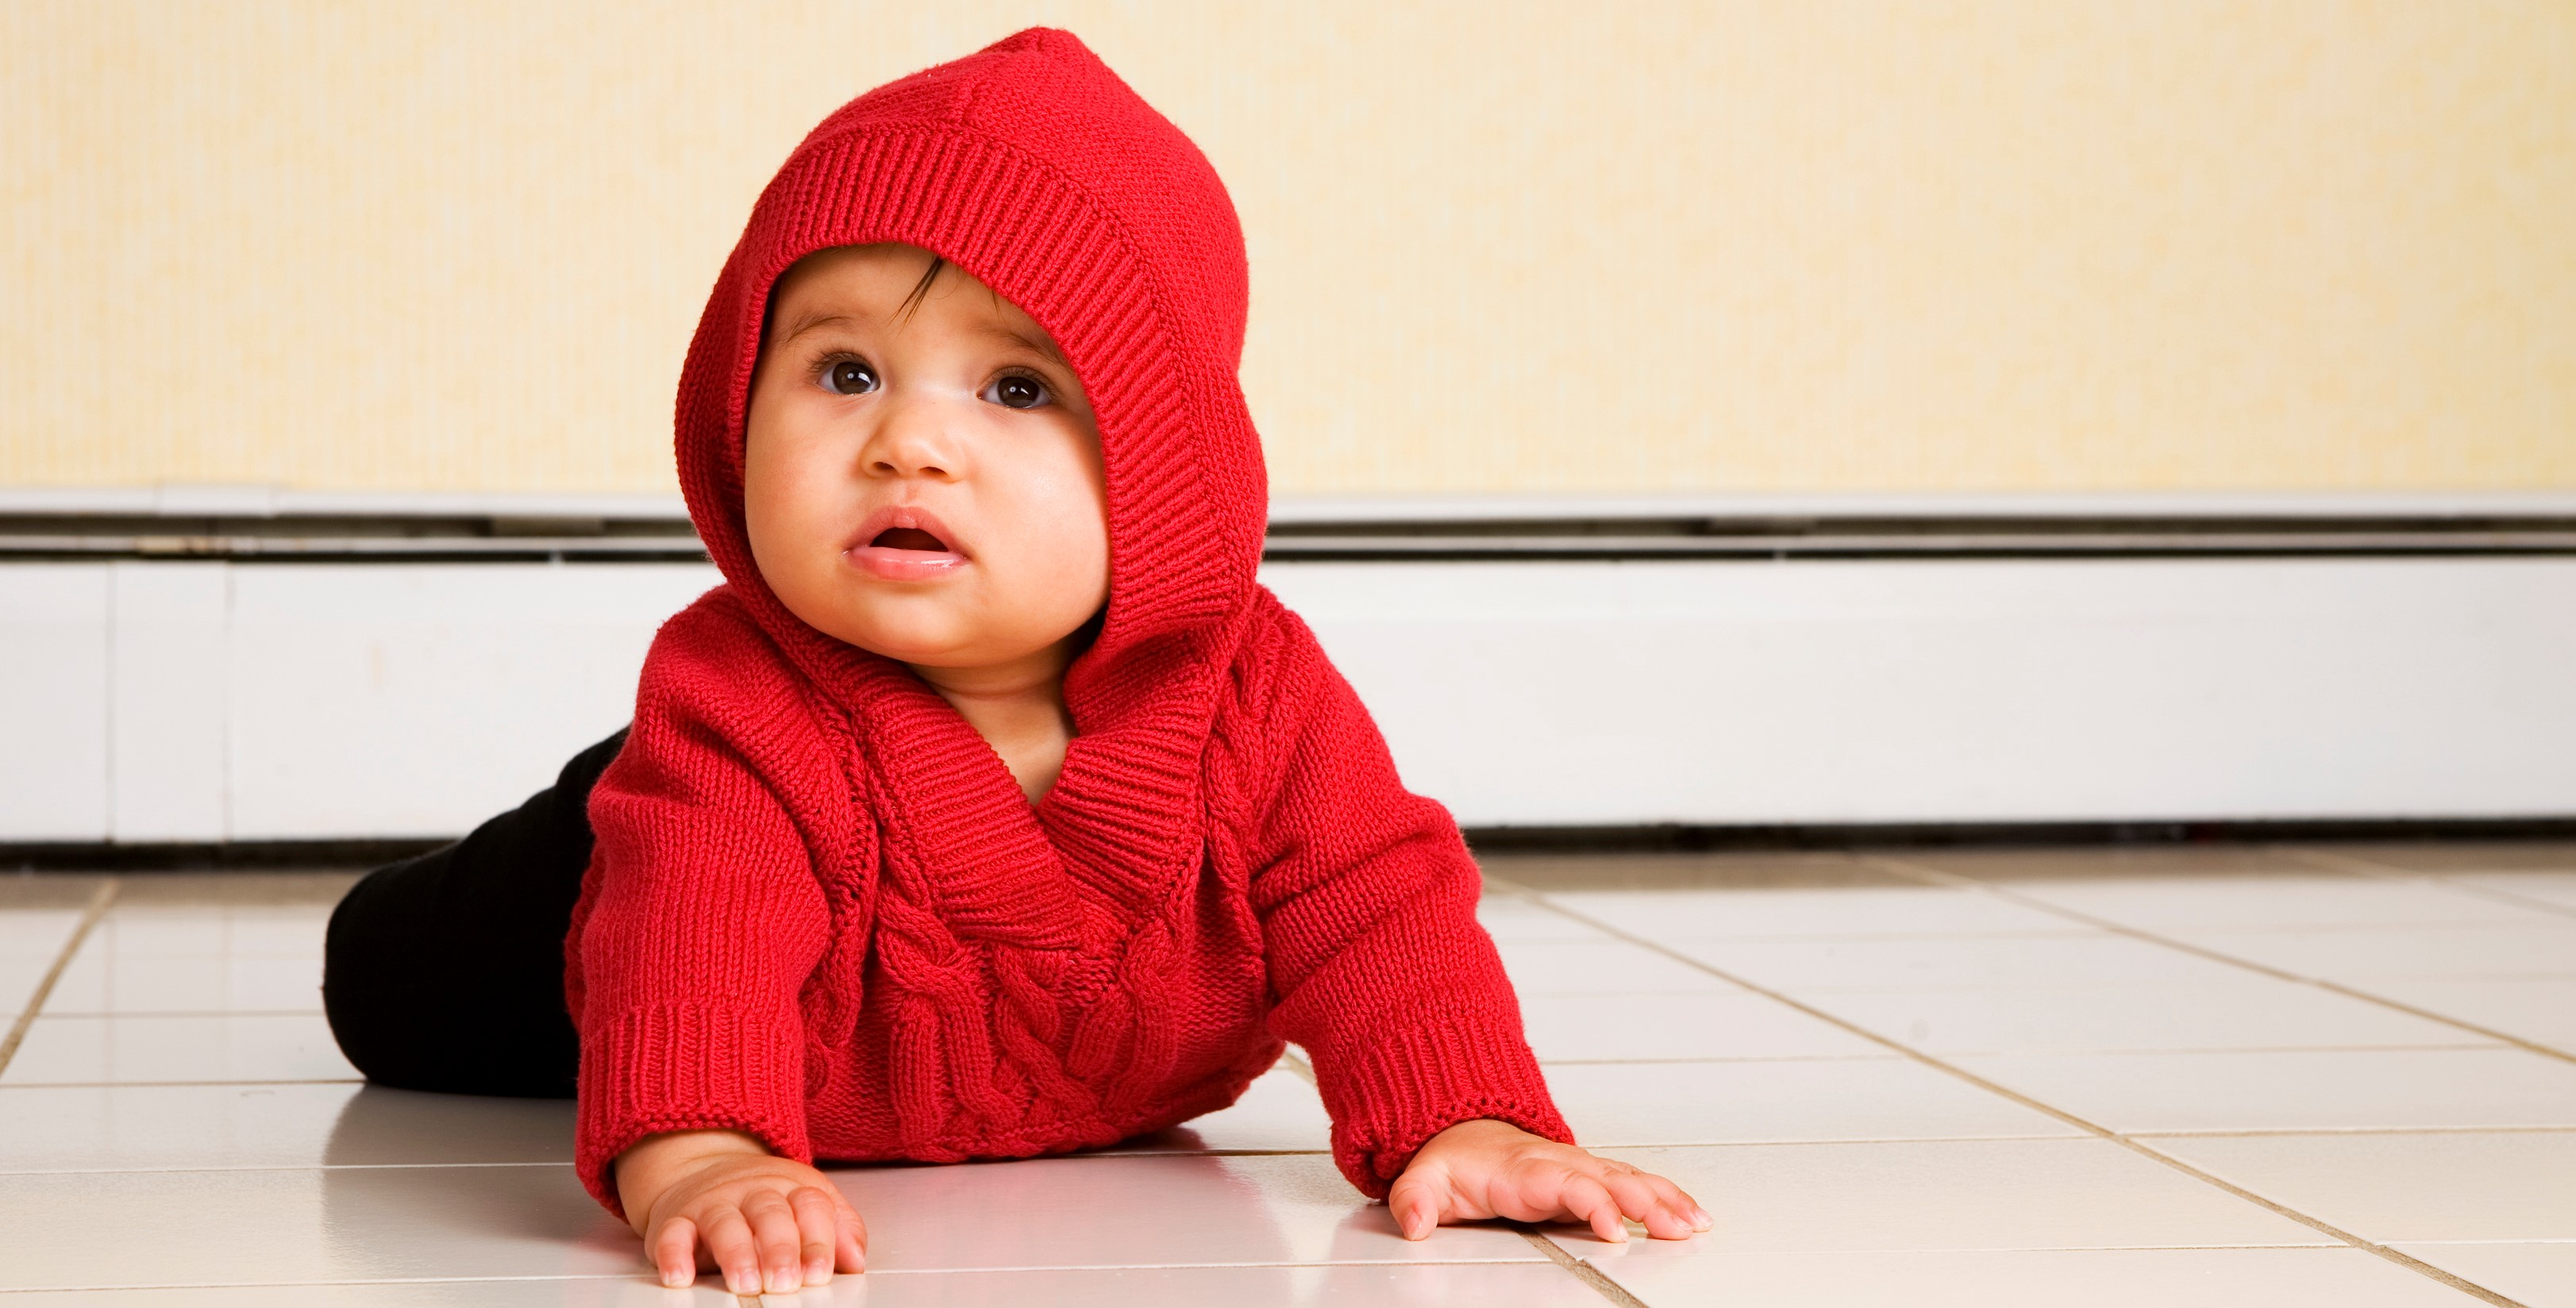 A biracial baby girl looking up as she trys to creep across a white, tile floor.